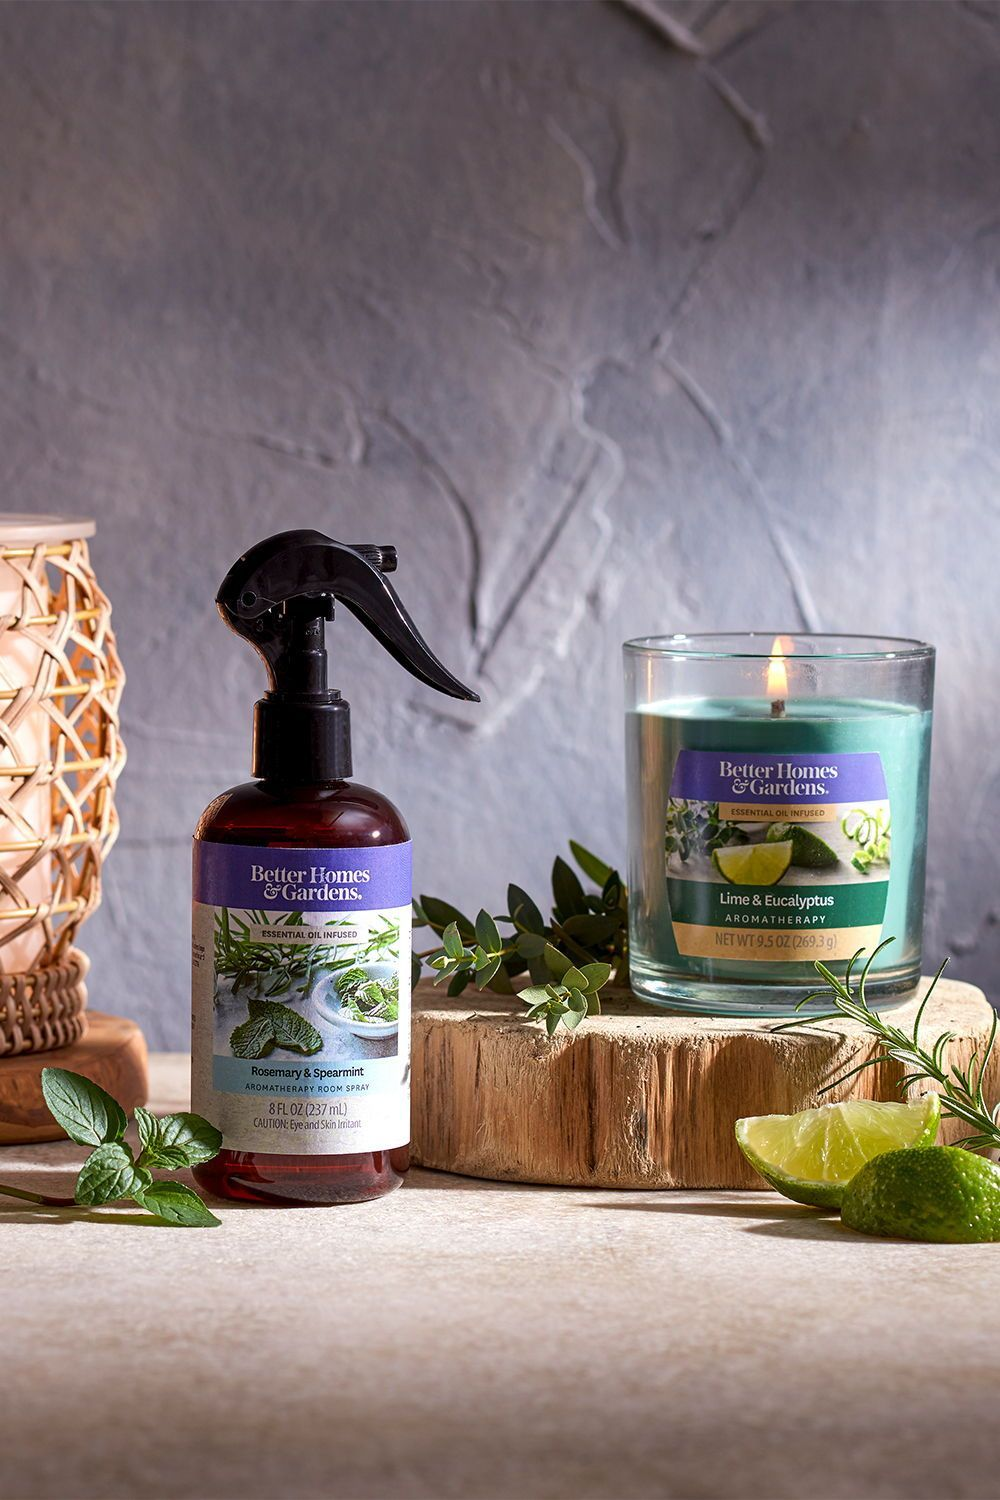 Better Homes & Gardens Scented Jar Candle, Lime and